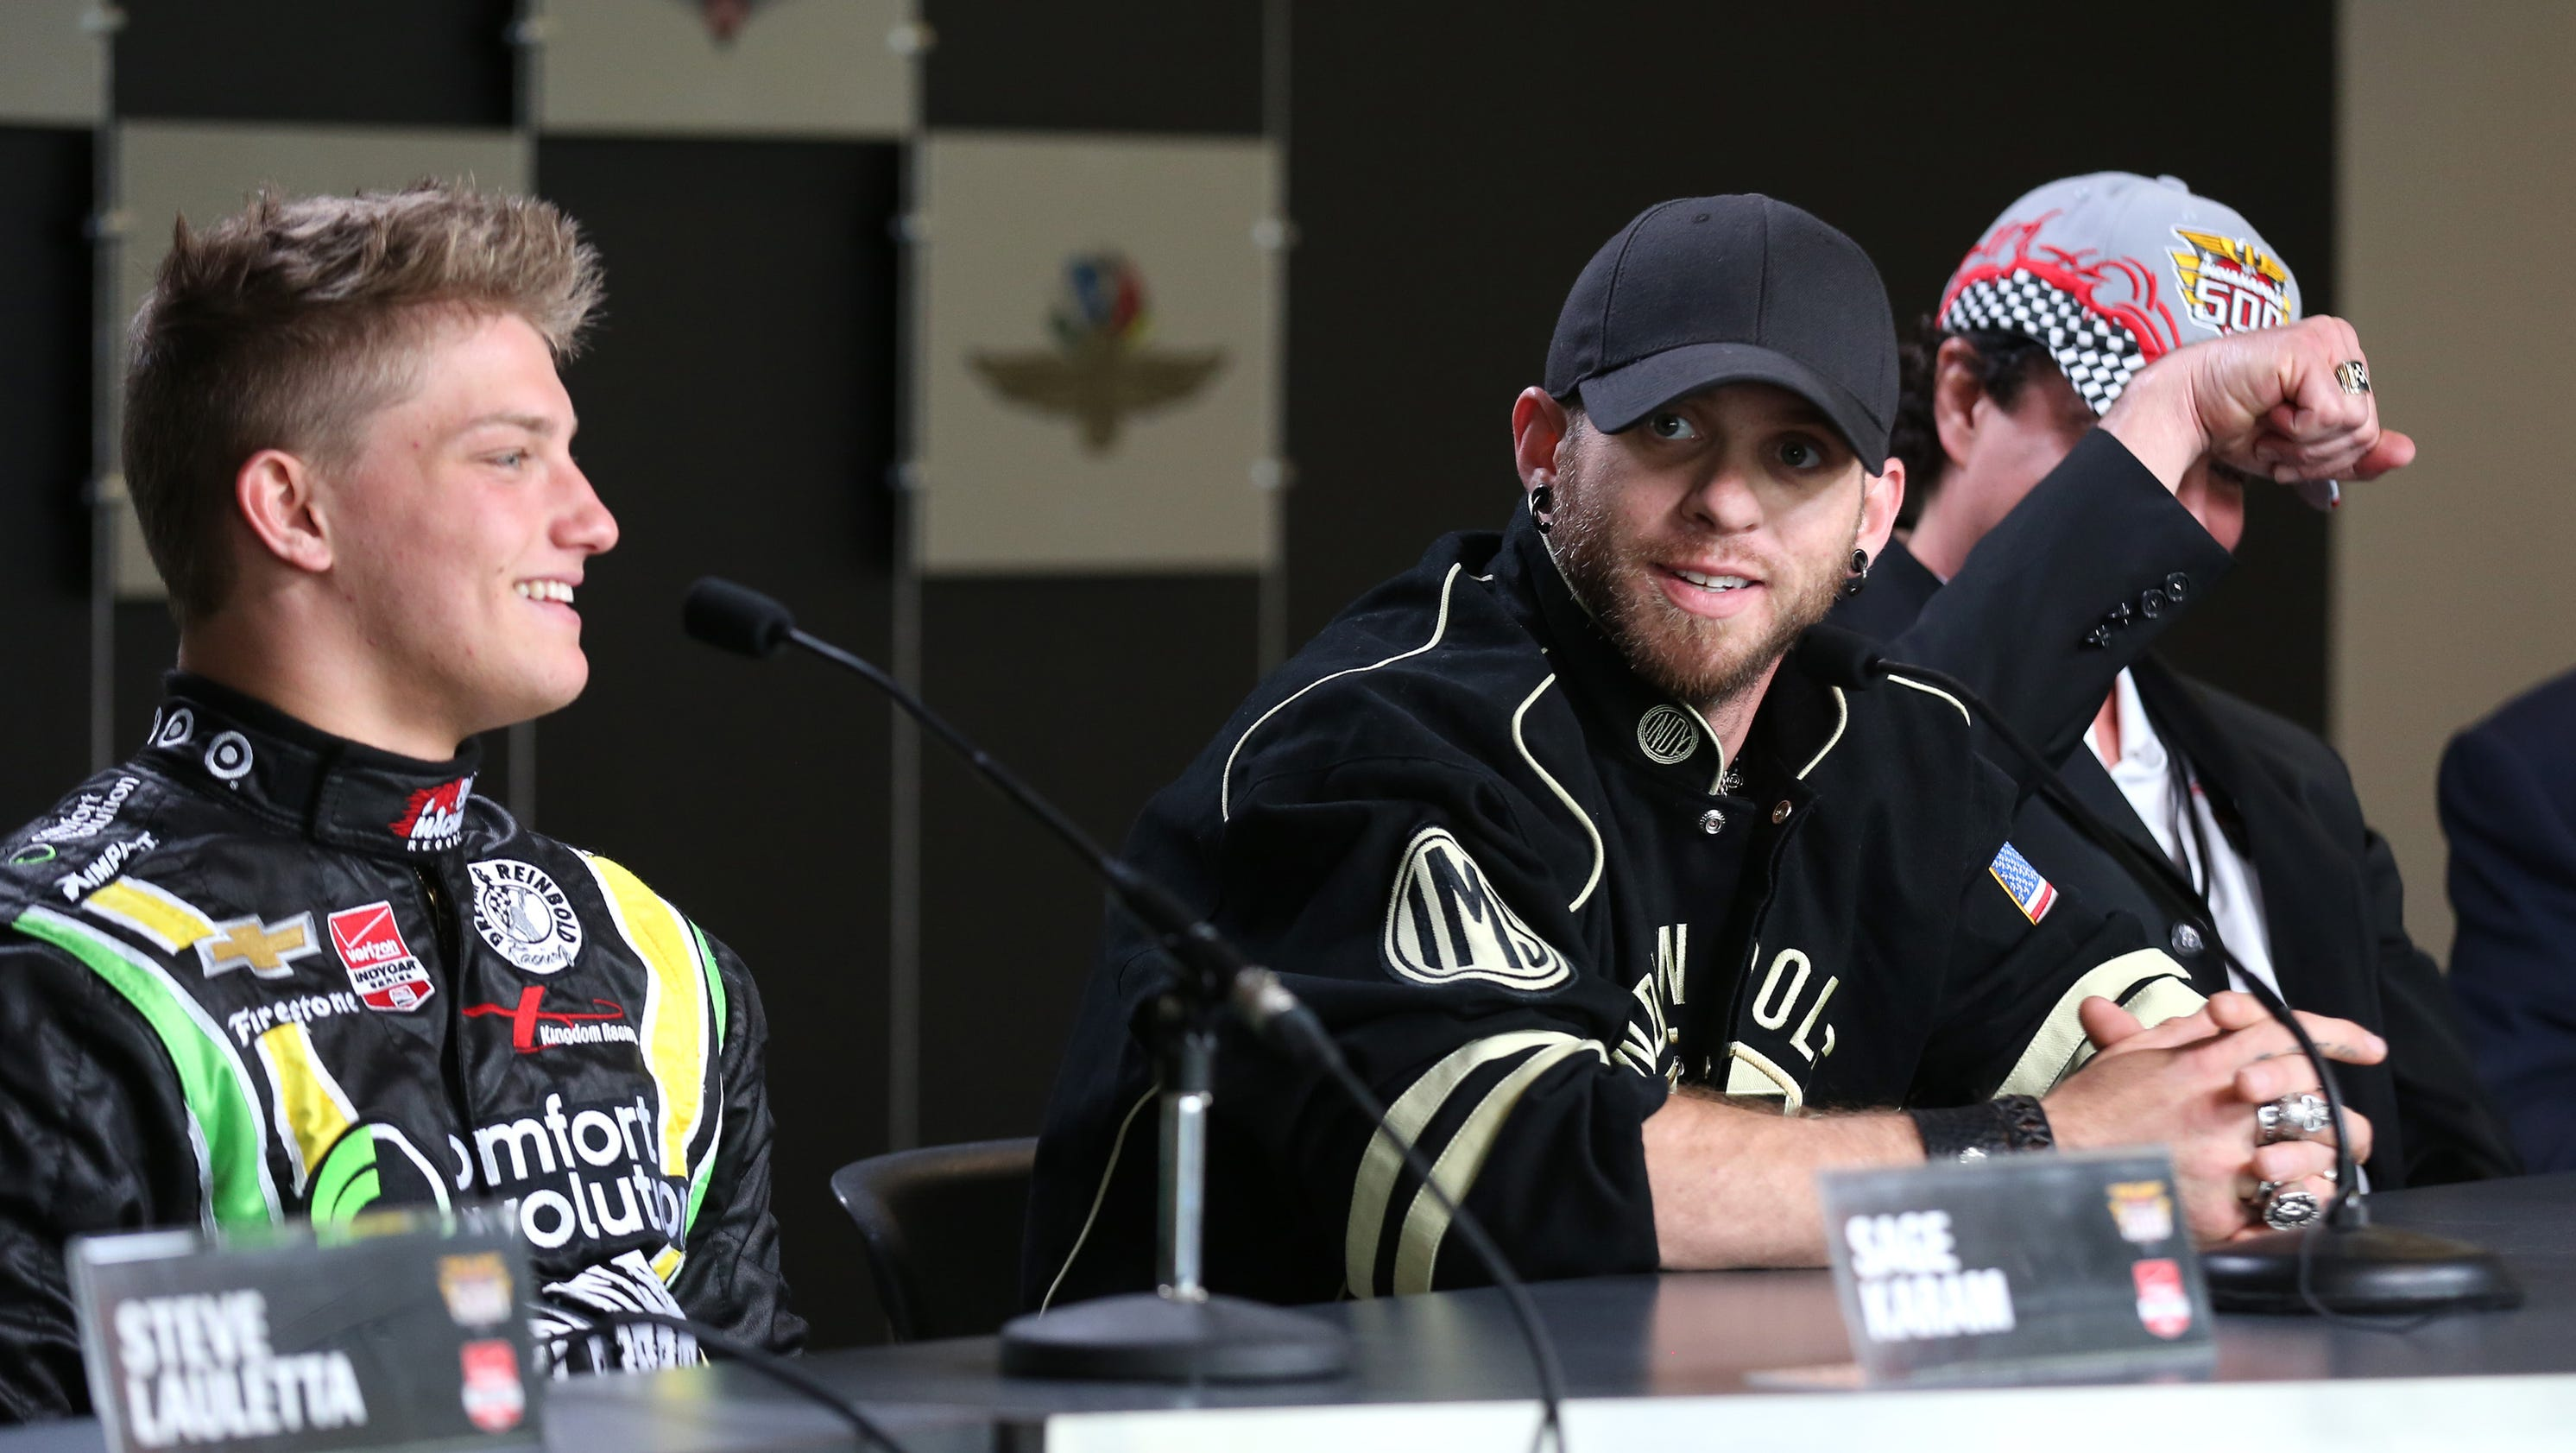 Brantley Gilbert adds face to rookie s Indy 500 car